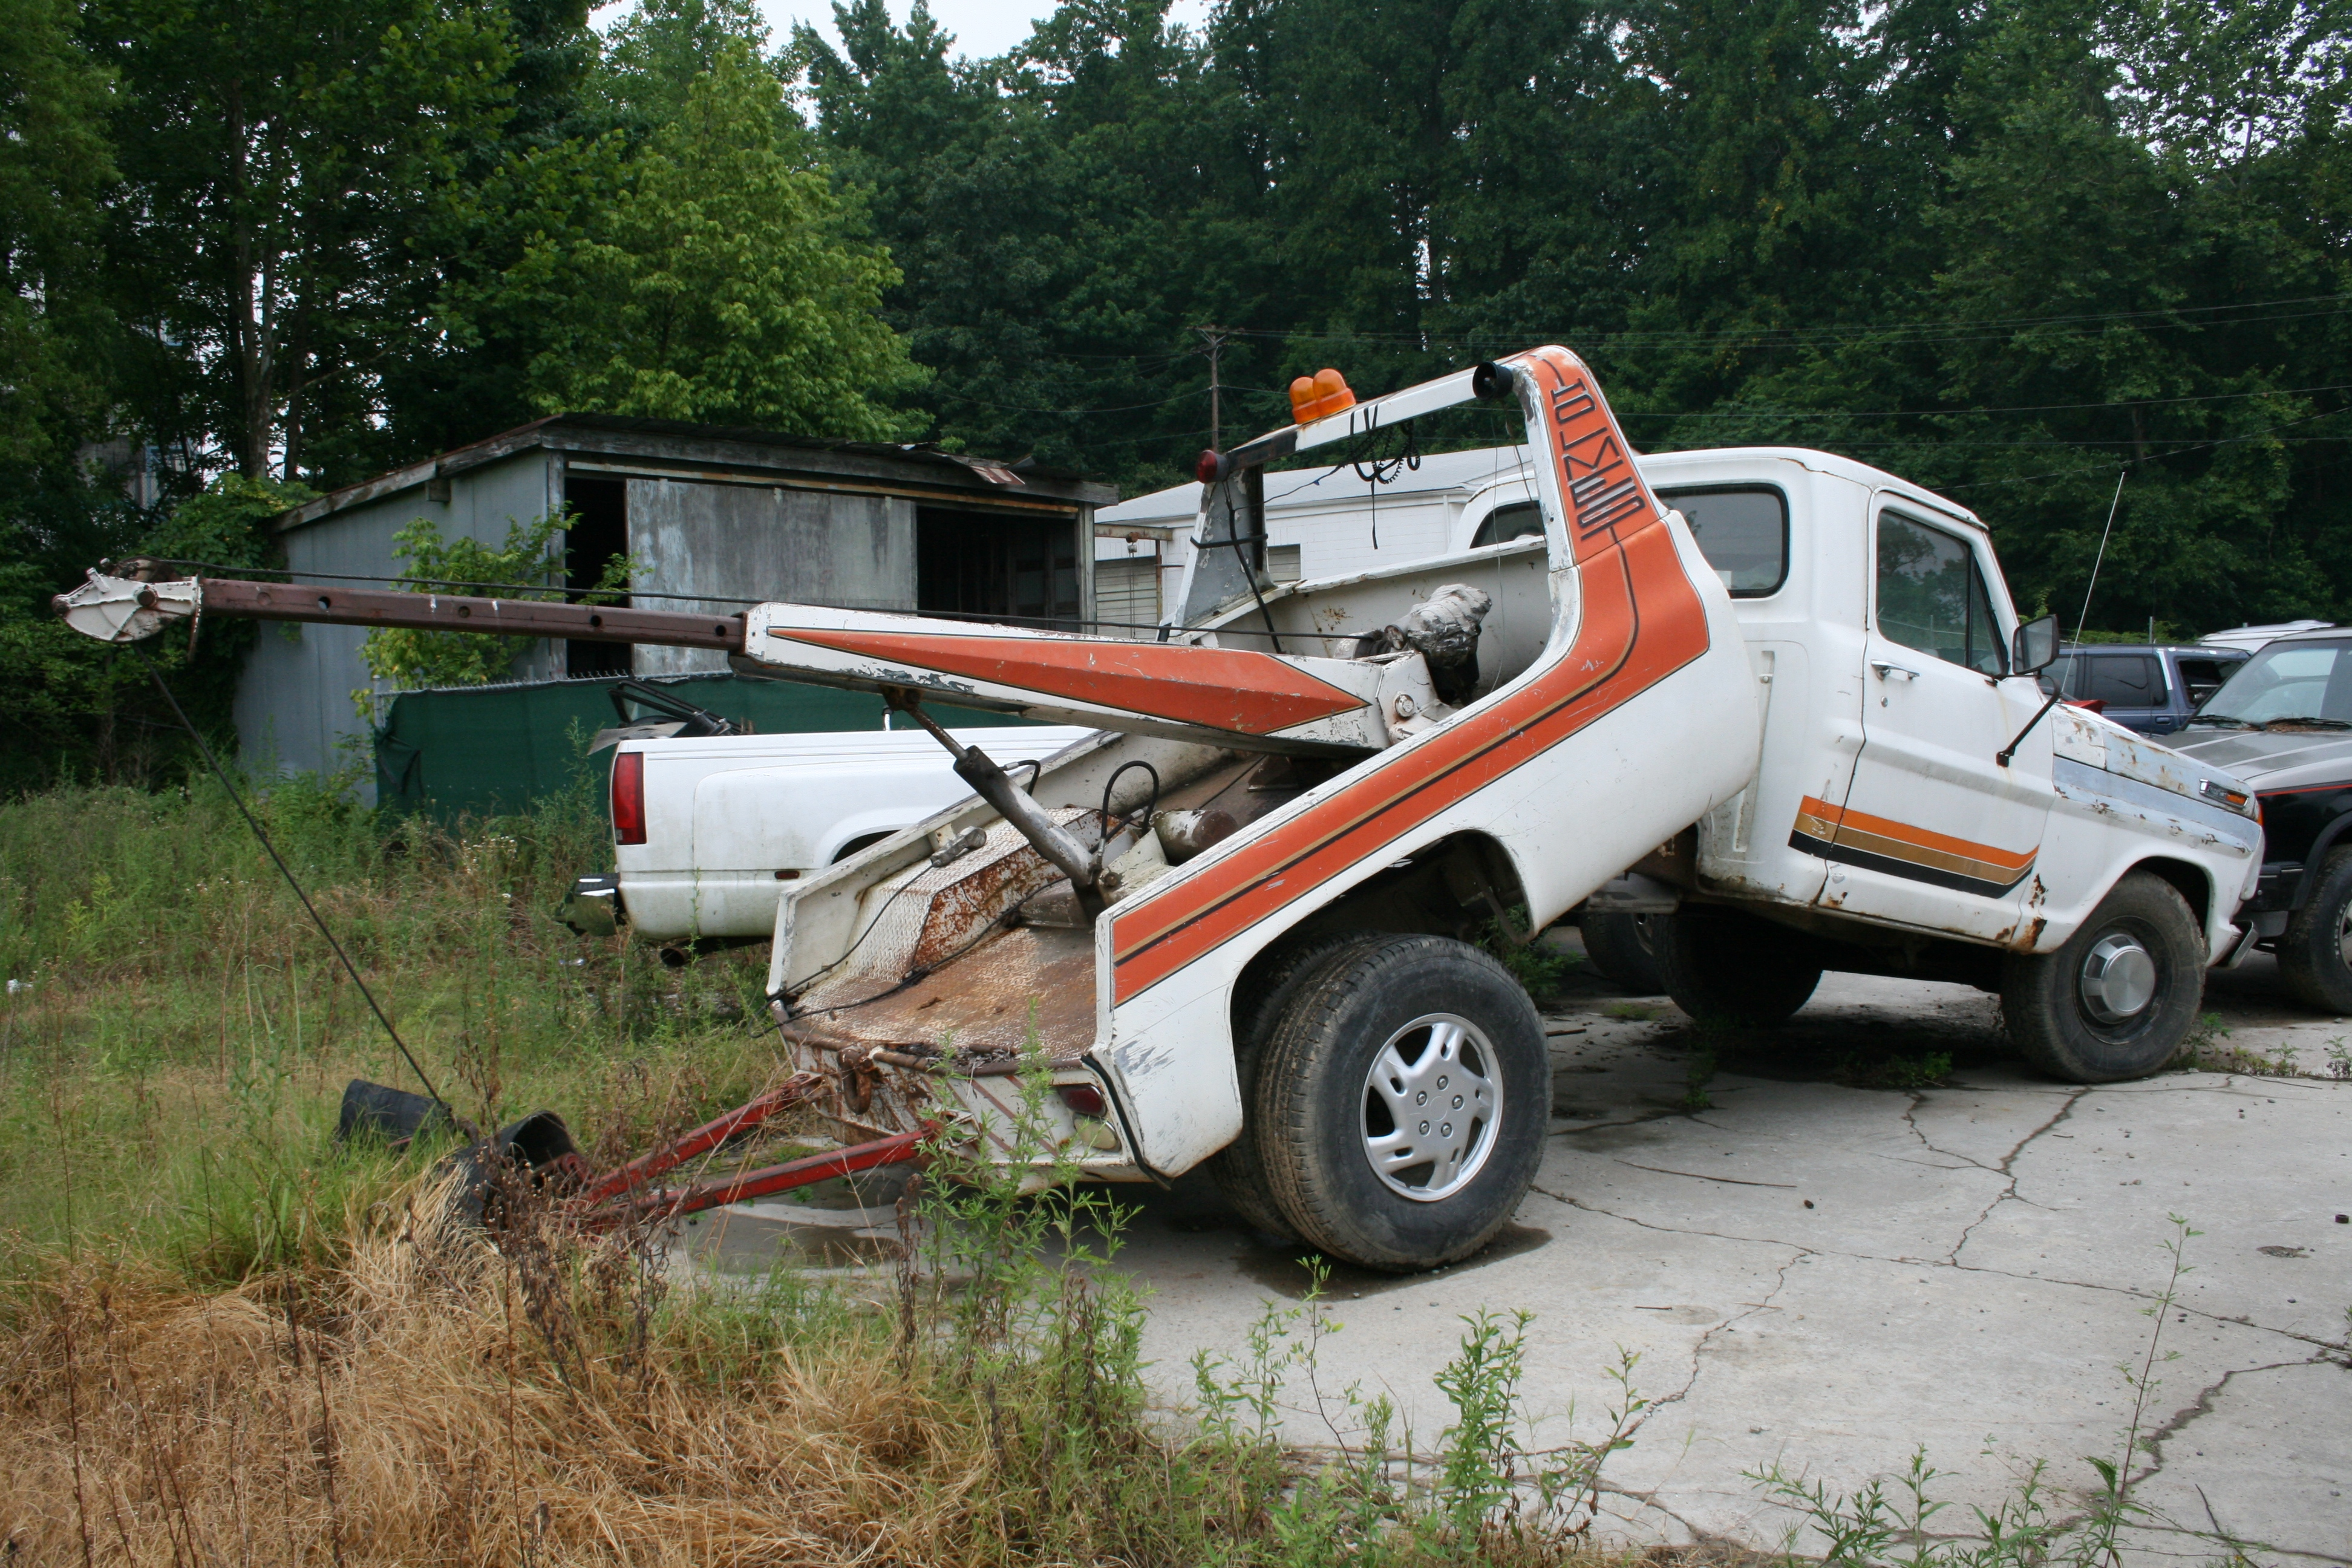 File:2009-07-05 Folded tow truck.jpg - Wikimedia Commons